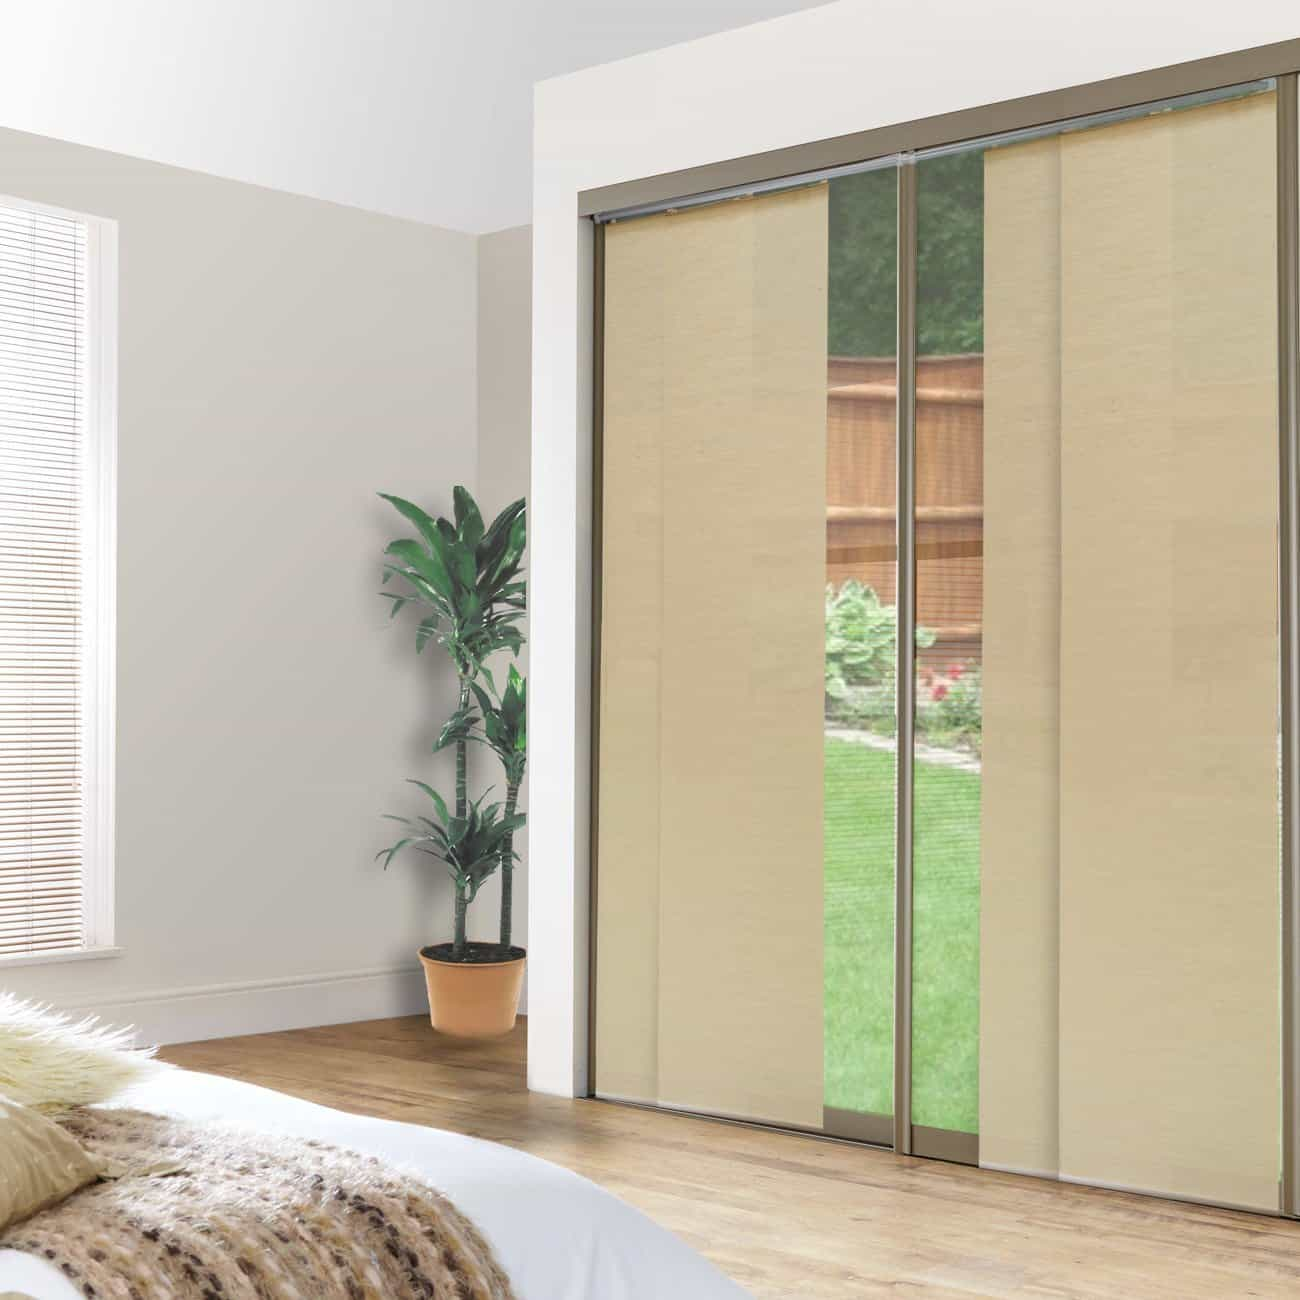 Chicology Double Rail Track Privacy Fabric Adjustable Sliding Panel Cordless Shade 80 x 96 & Window Treatments for Sliding Glass Doors (IDEAS \u0026 TIPS)